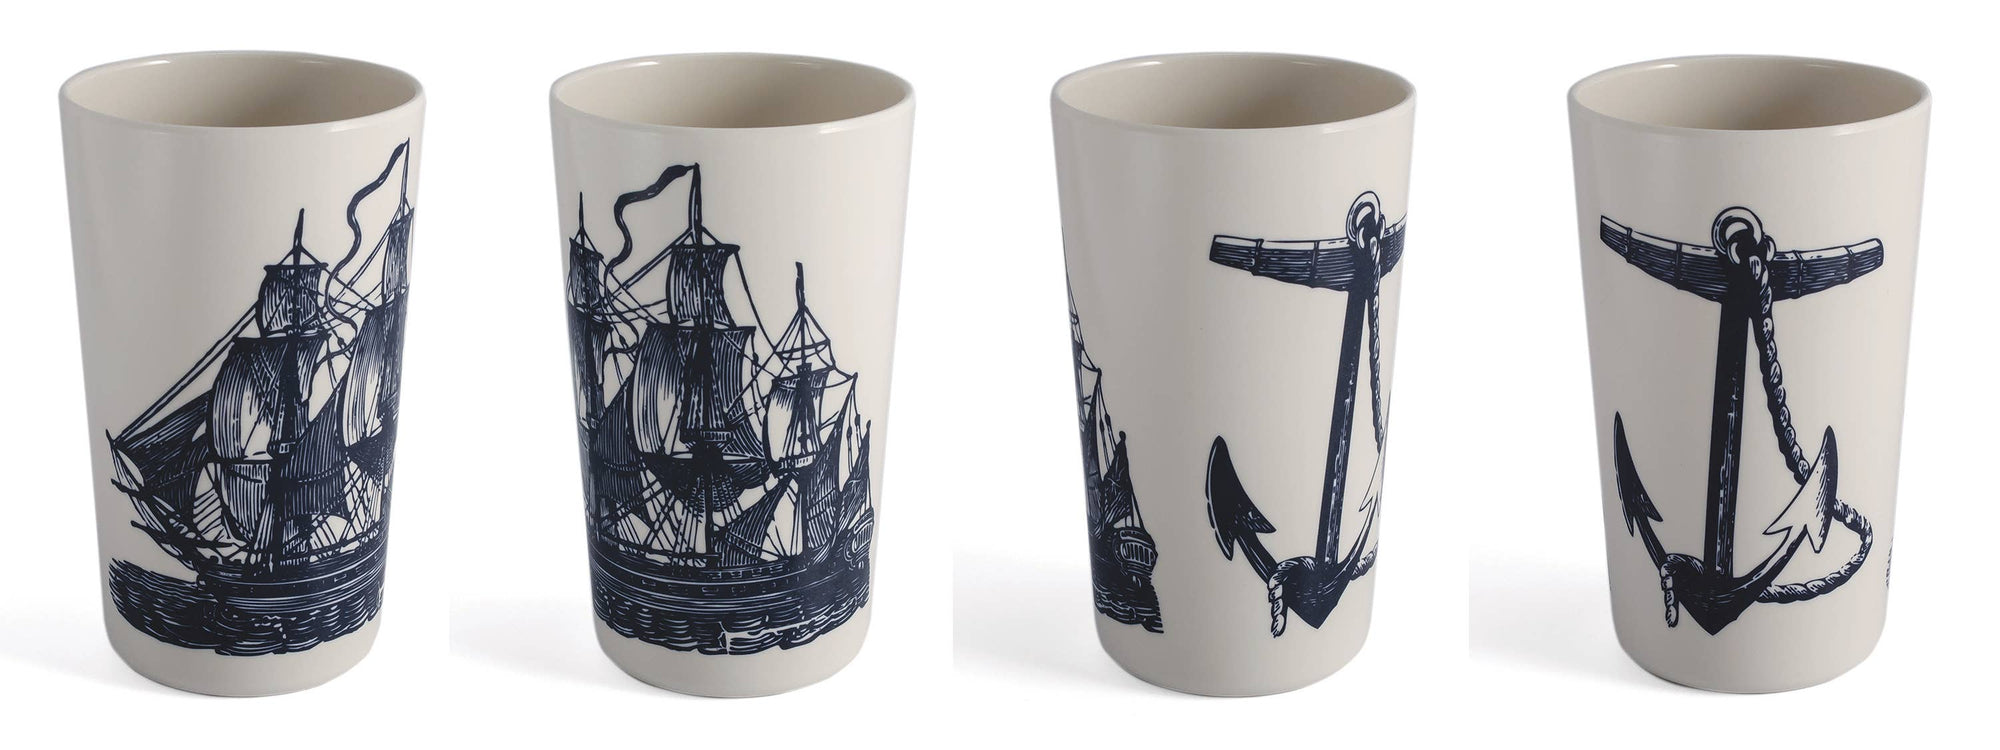 THOMASPAUL - Scrimshaw Melamine Tumblers Set of 4